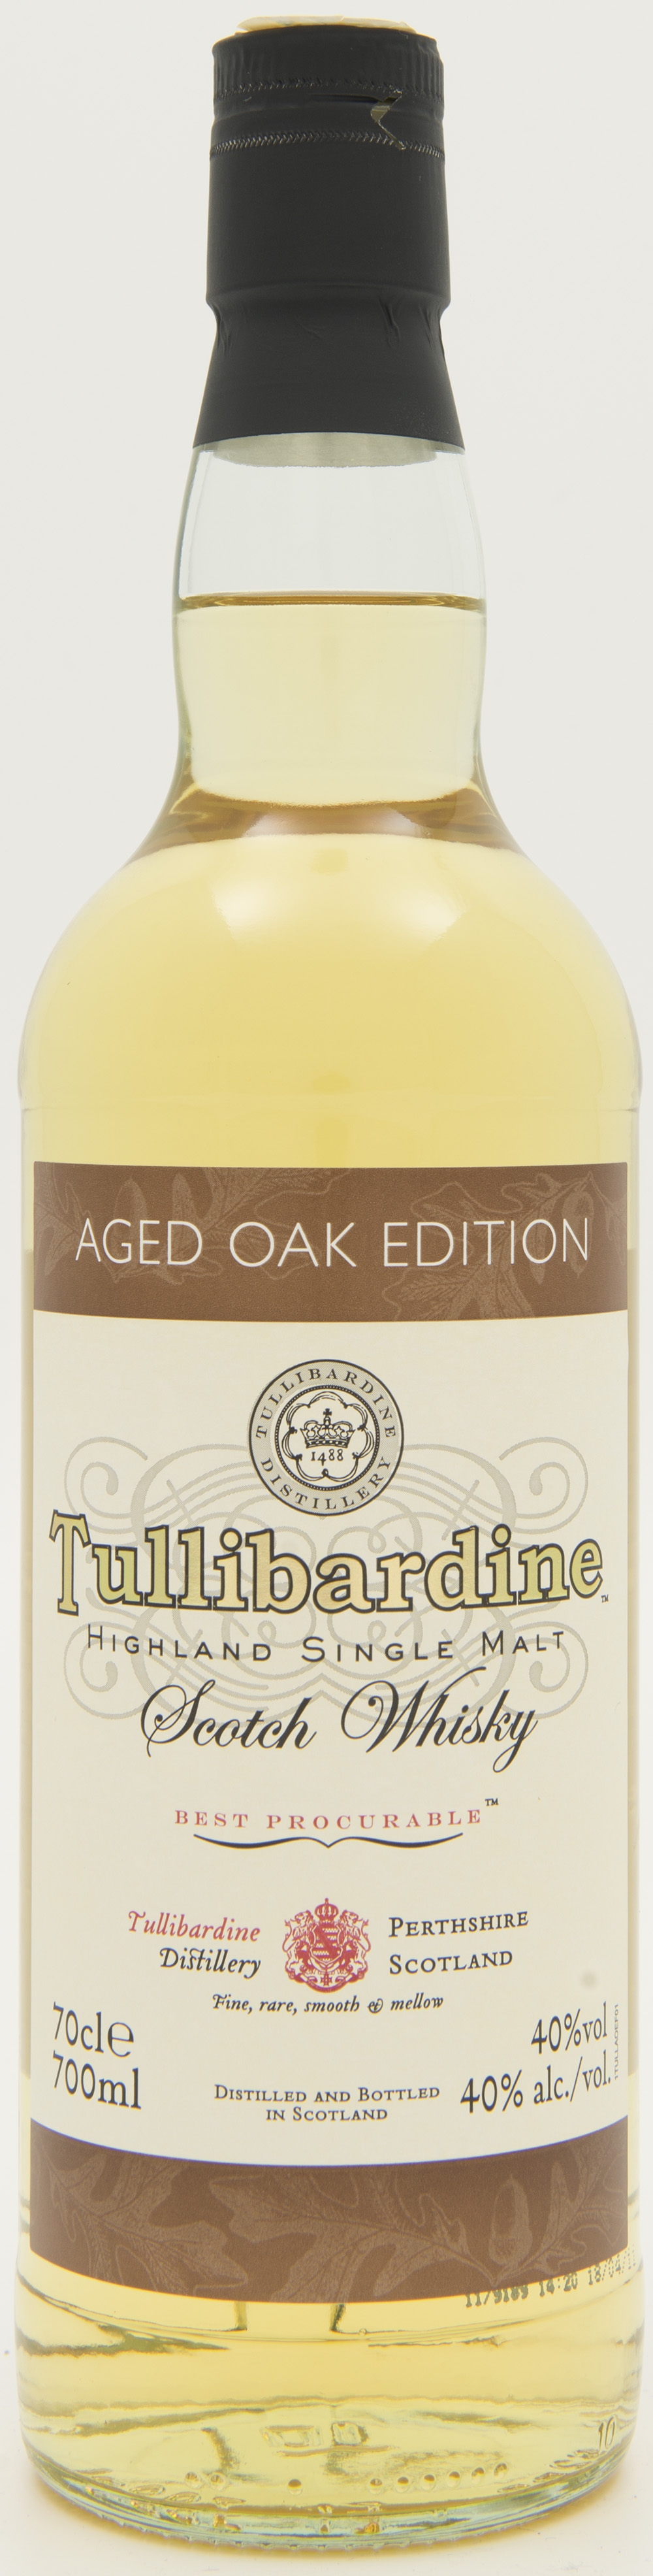 Billede: DSC_3735 Tullibardine Aged Oak Edition - bottle front.jpg